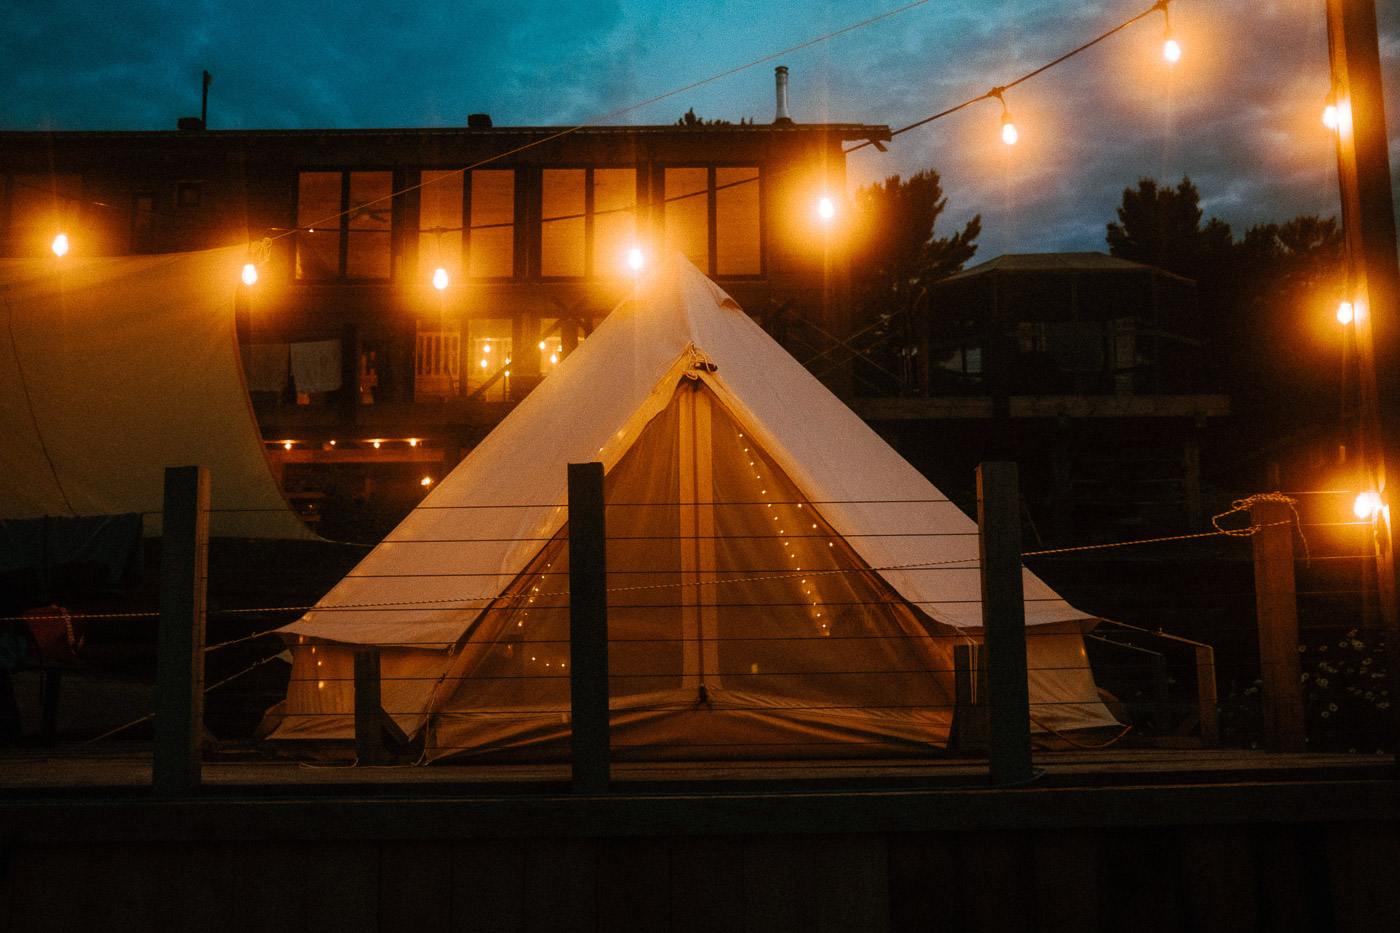 Pine Falls Lodge Review – An Under-the-Radar Luxury Glamping Tent Experience